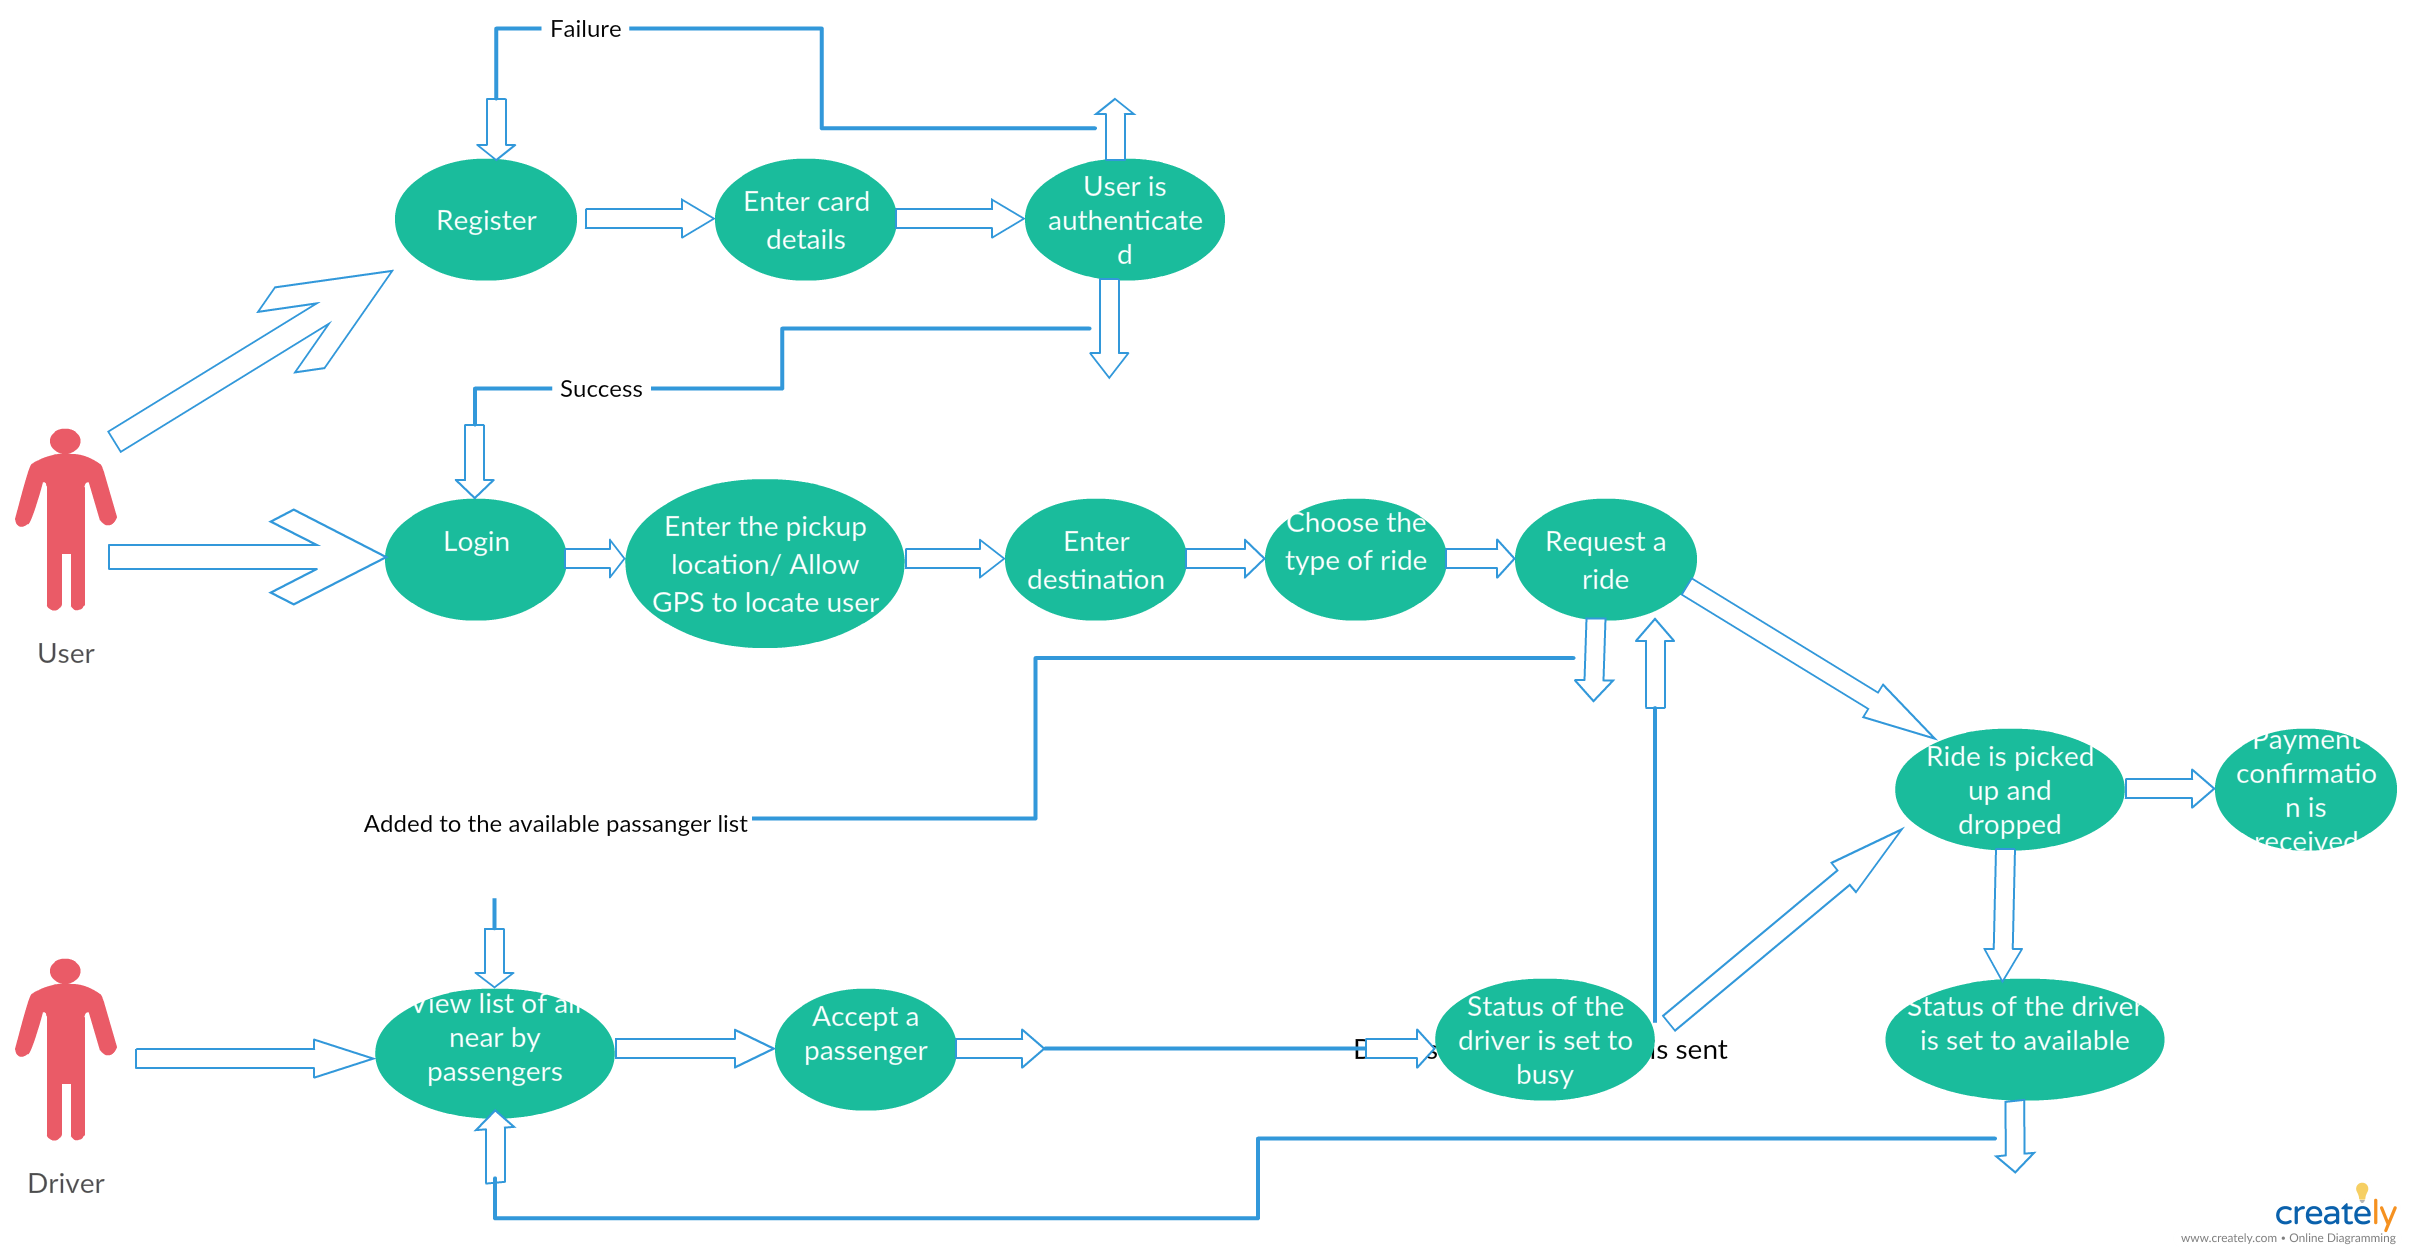 medium resolution of use case diagram of uber the popular mobile app base taxi service use this use case diagram for uber as an example to create your own uml use case